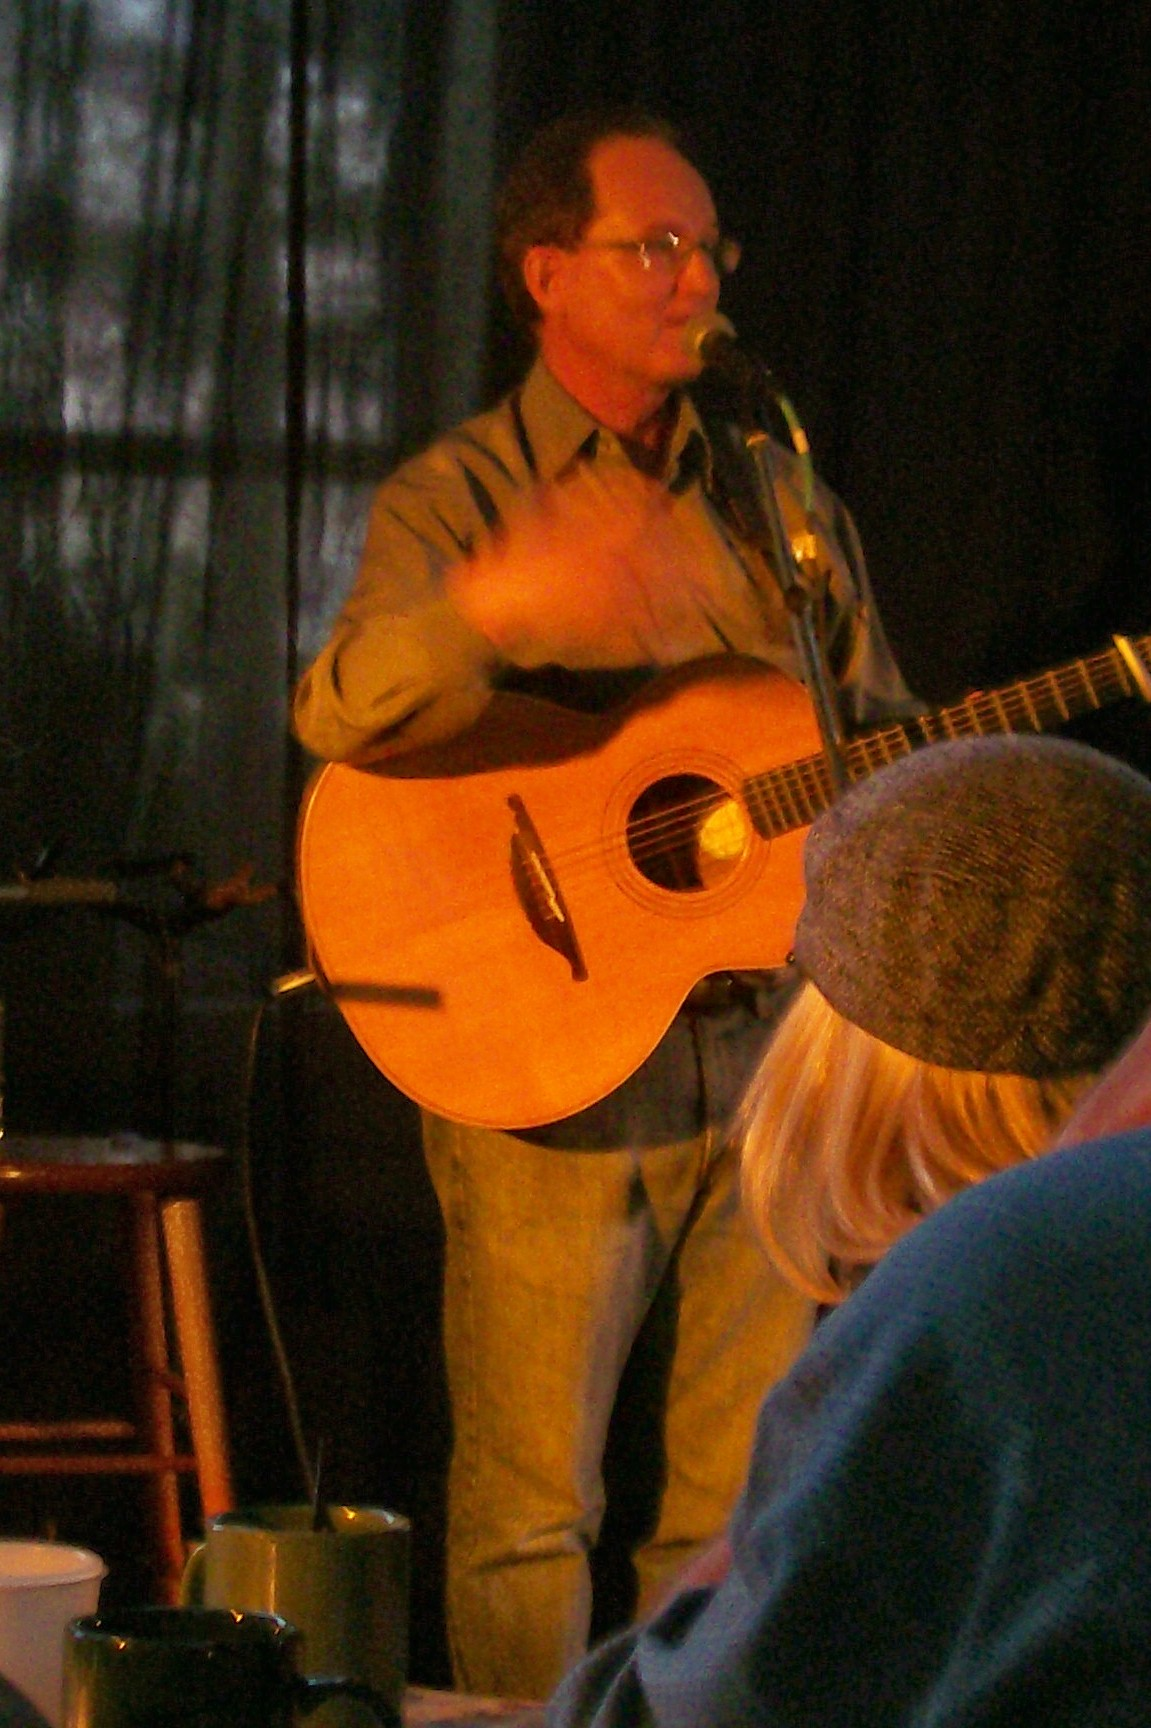 Brian Crozier at the Black Walnut Folk Club May 18, 2007